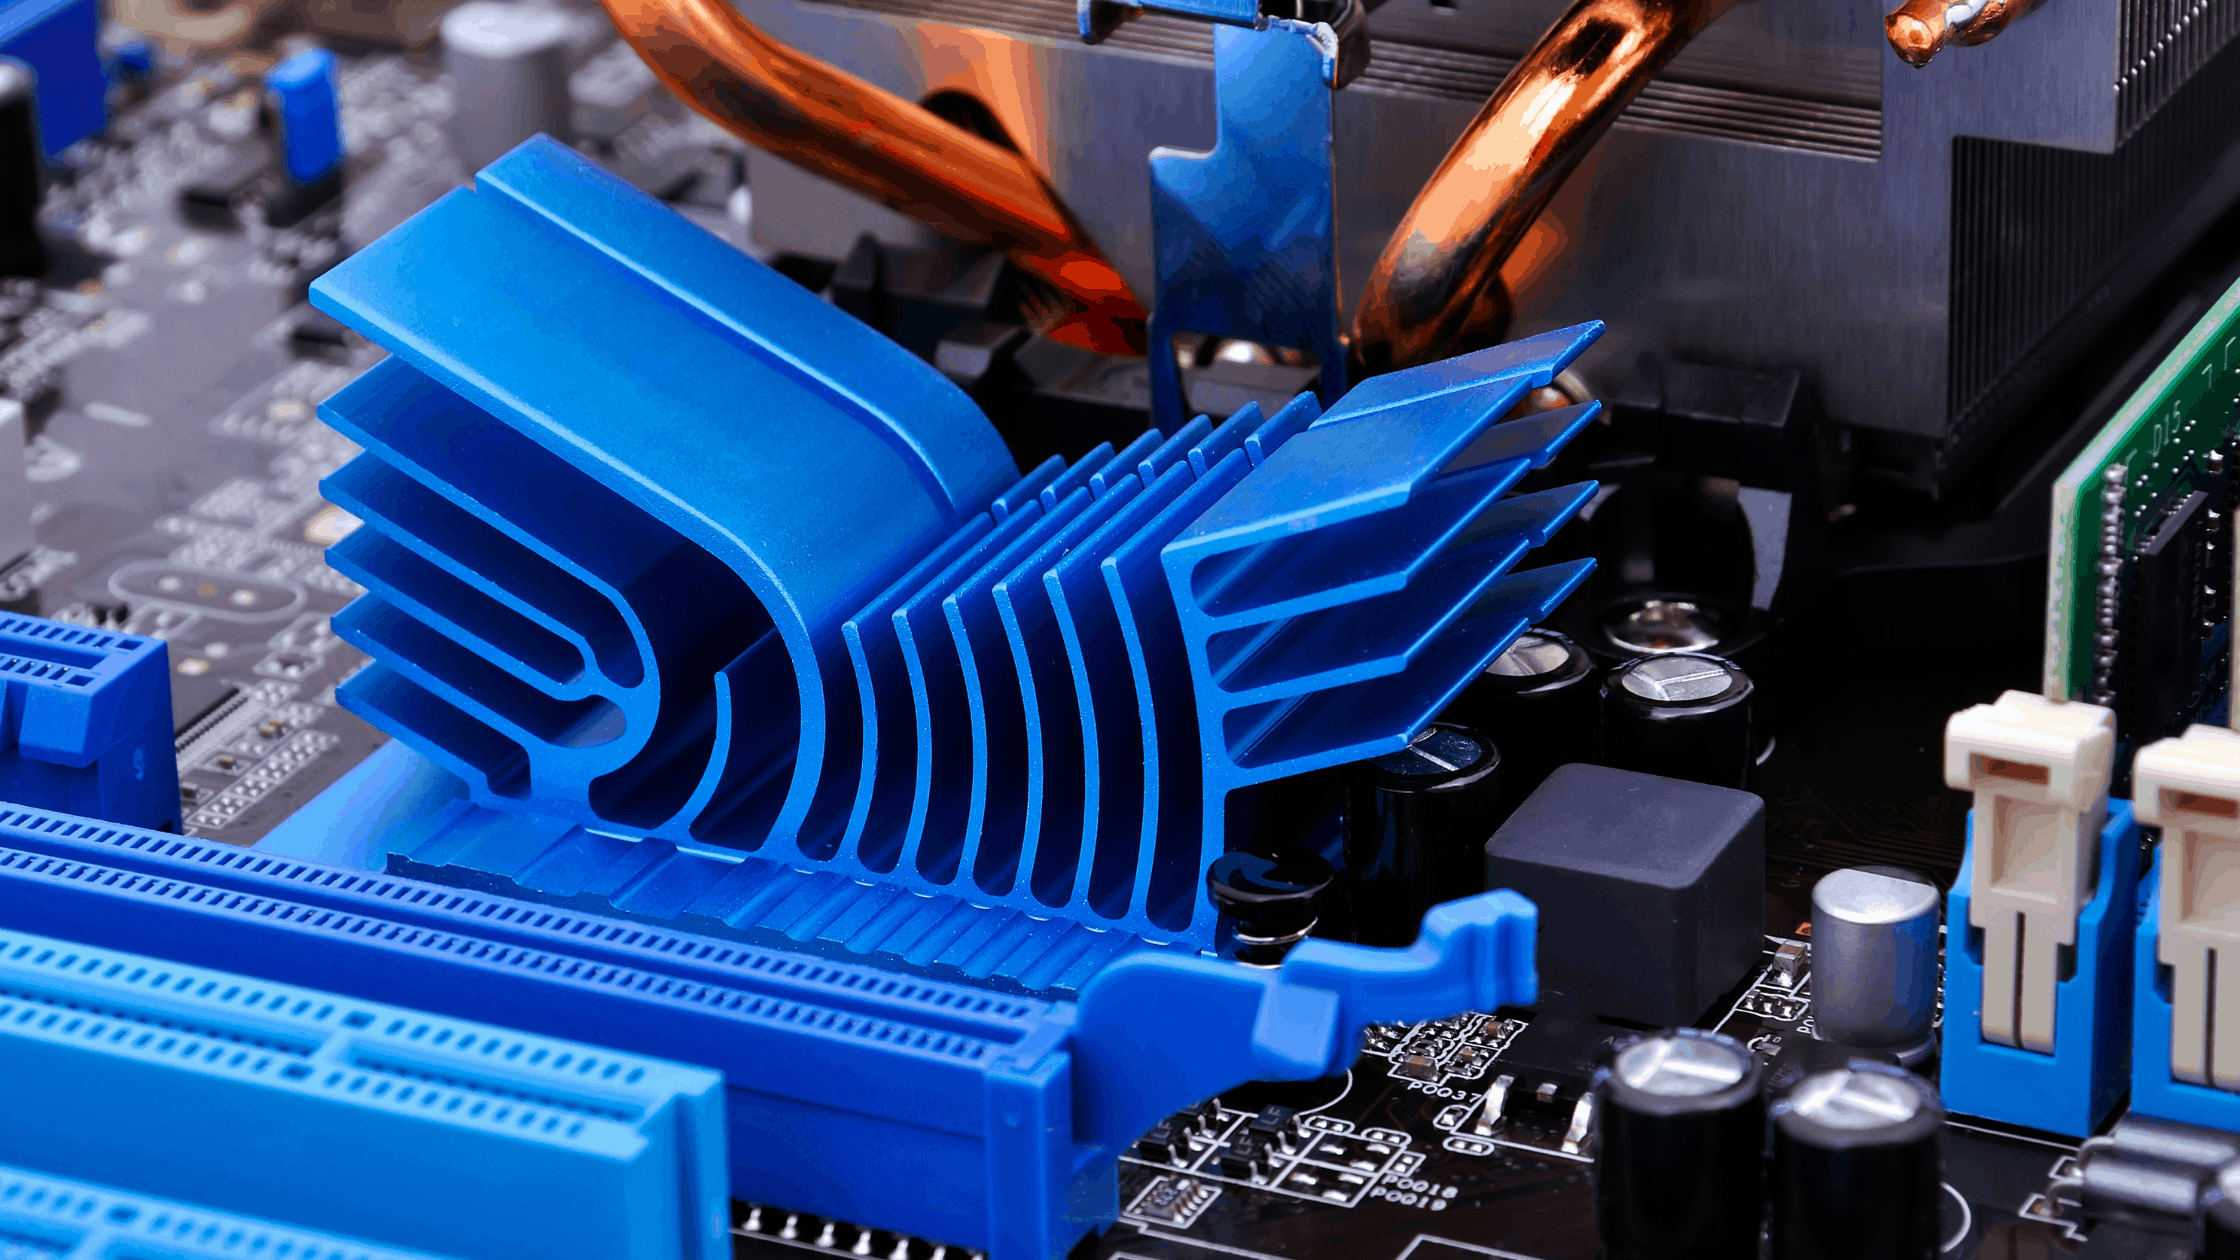 What Is the Function Of The Radiator Fan?